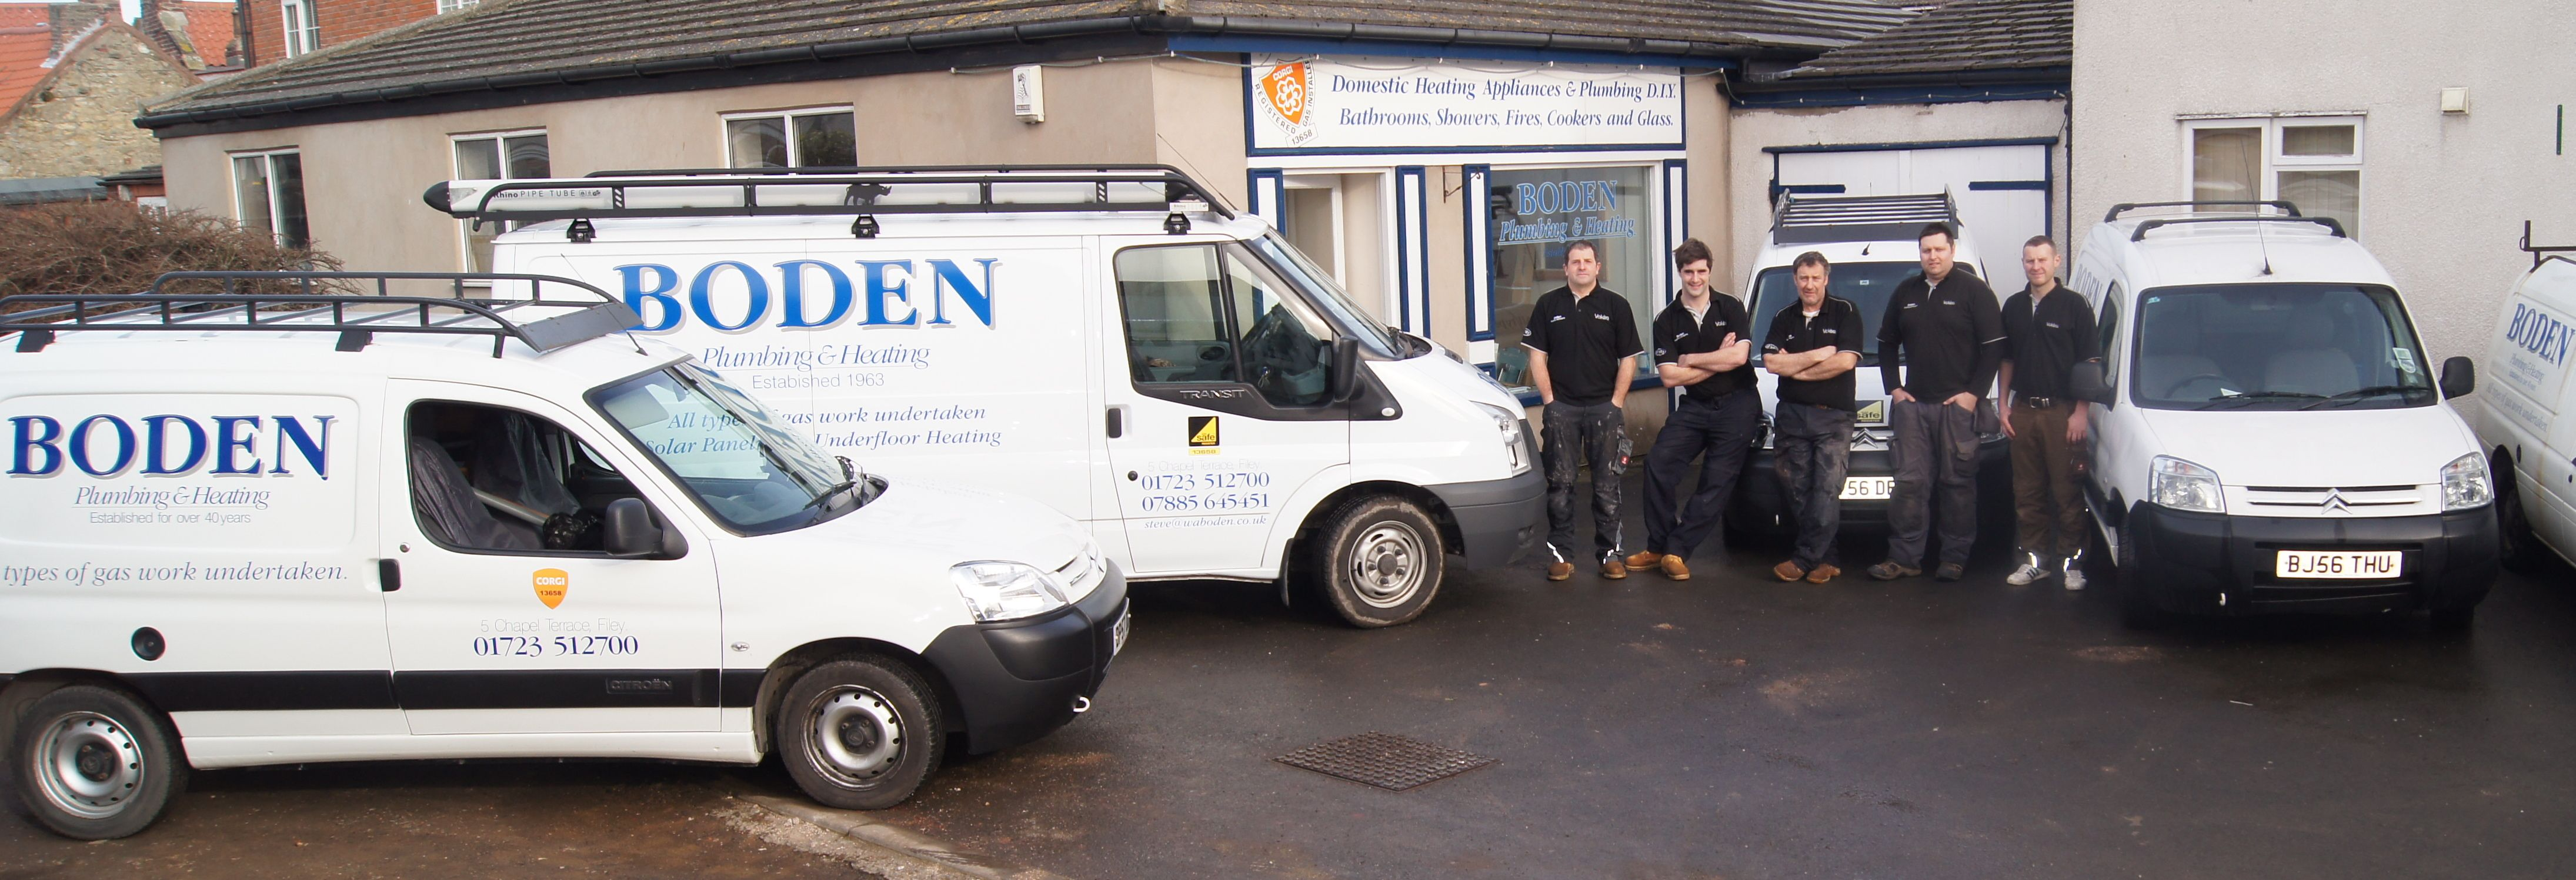 Boden Plumbing And Heating In Filey Are A Family Firm That Have Been Elished For Nearly